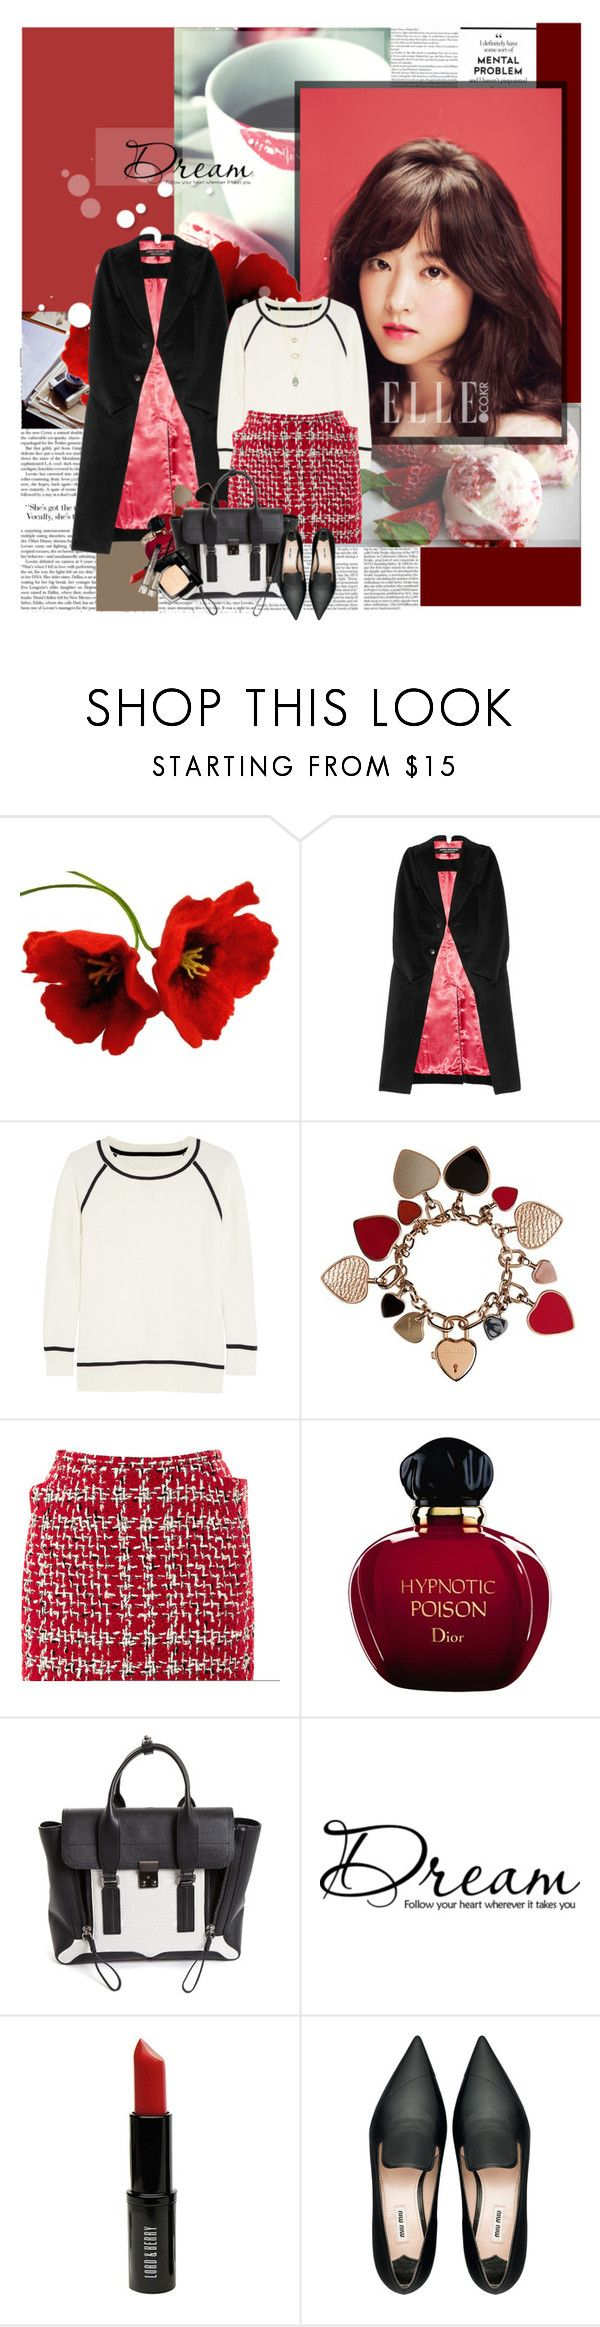 """Dream follow your heart wherever it takes..."" by thithi-nguyen17 ❤ liked on Polyvore featuring Spy Optic, Junya Watanabe, Iris & Ink, Burberry, Thom Browne, Christian Dior, 3.1 Phillip Lim, Lord & Berry, Chanel and Miu Miu"